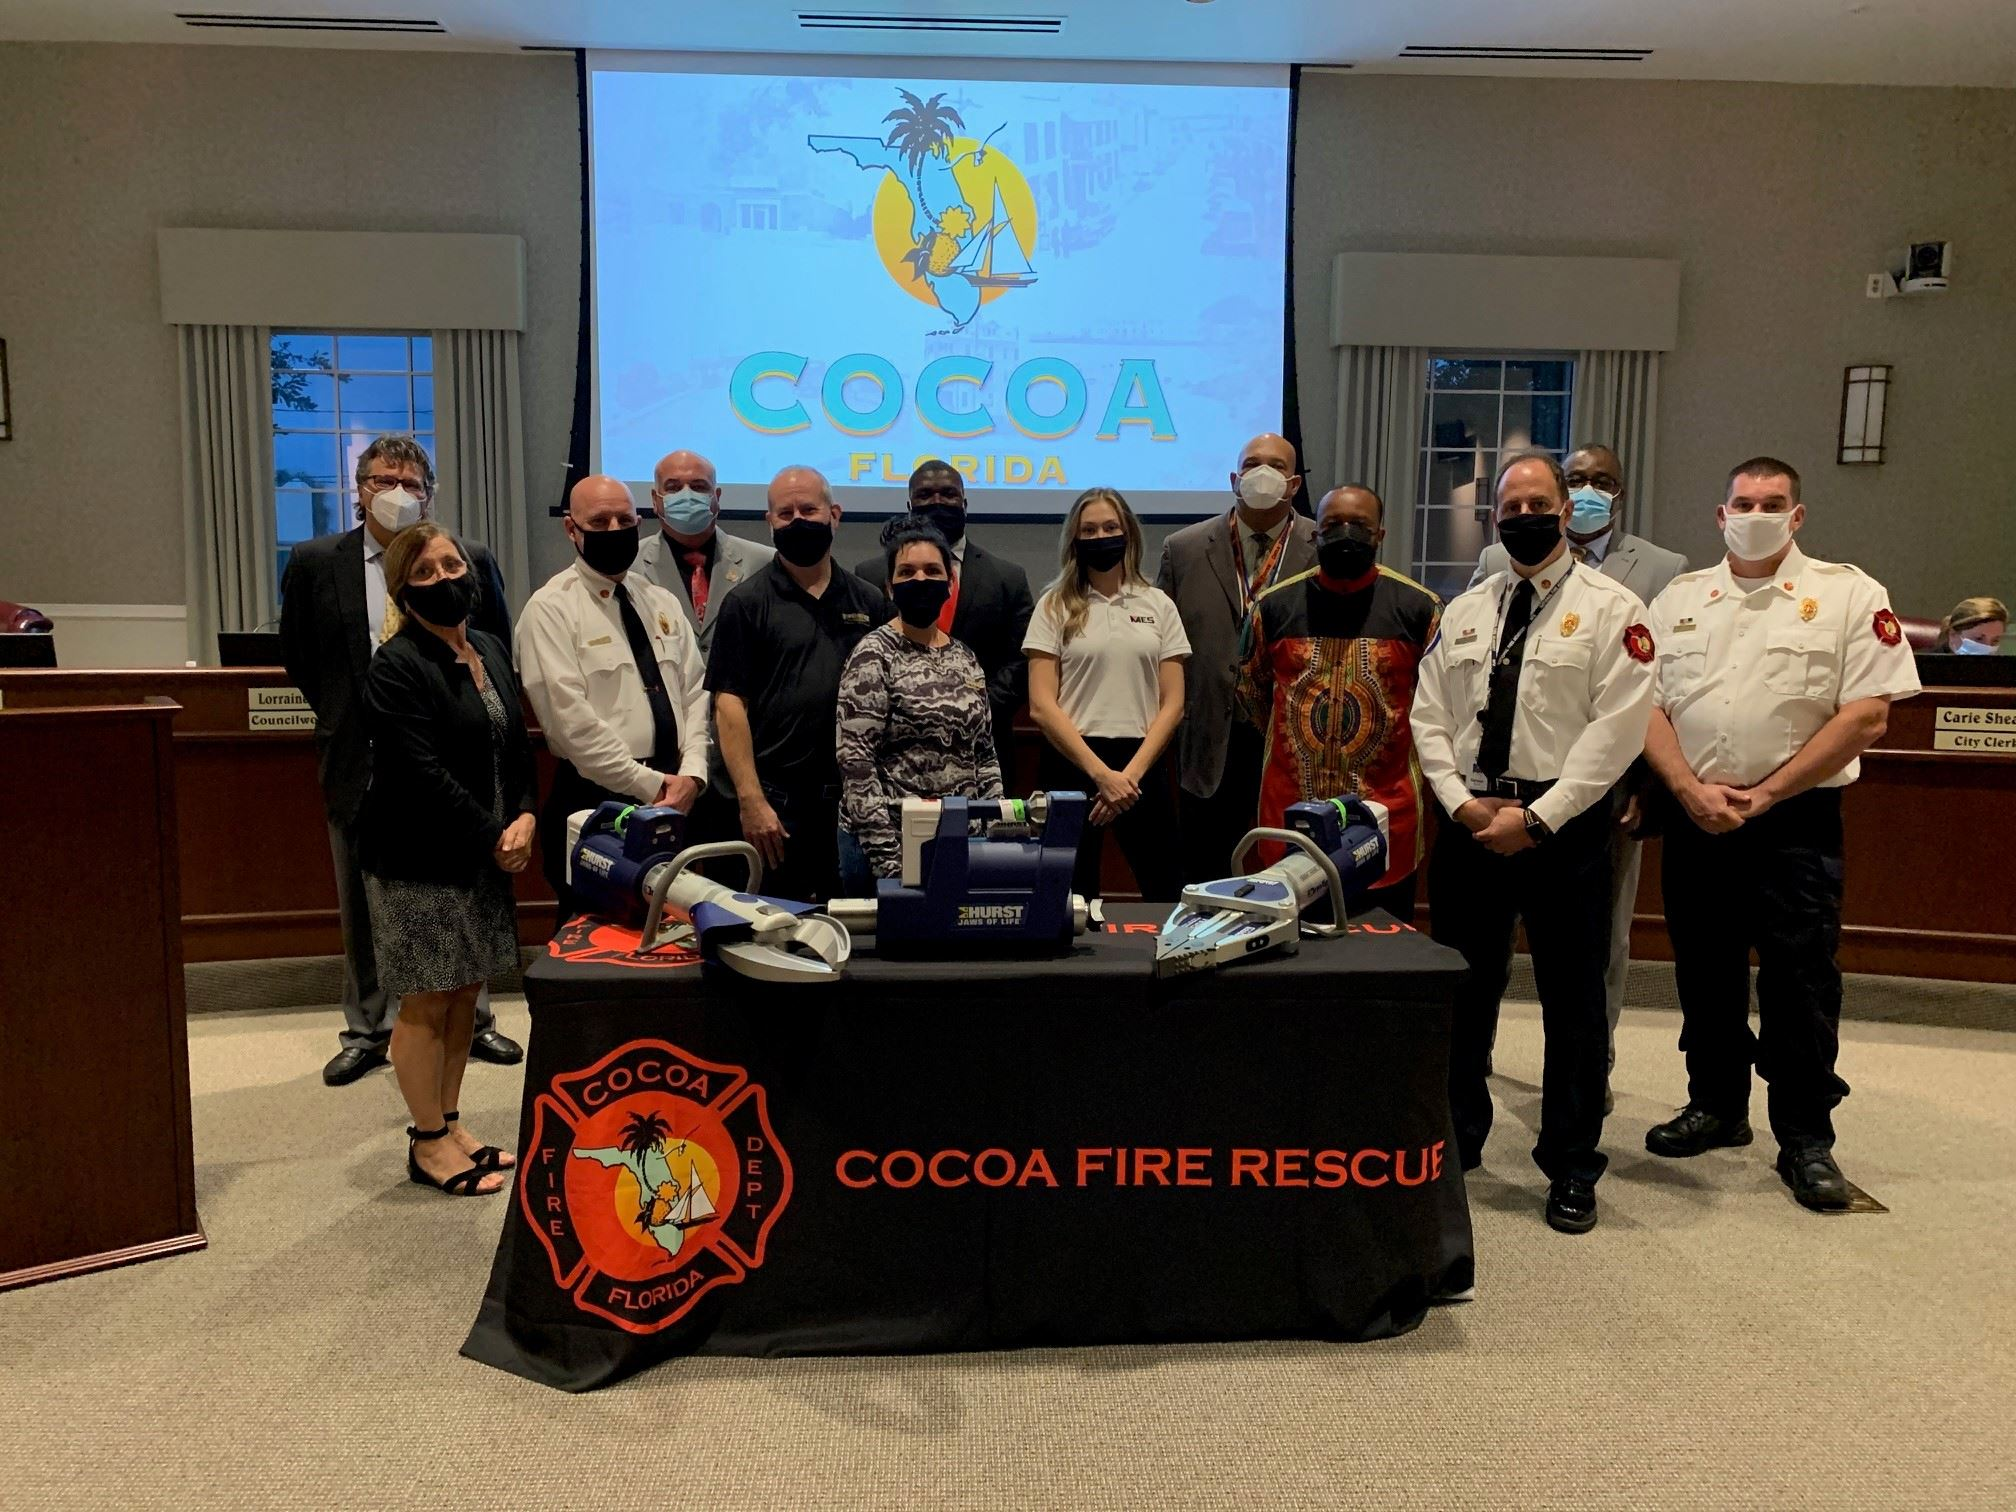 Cocoa fire members and Cocoa council members with new lifesaving equipment